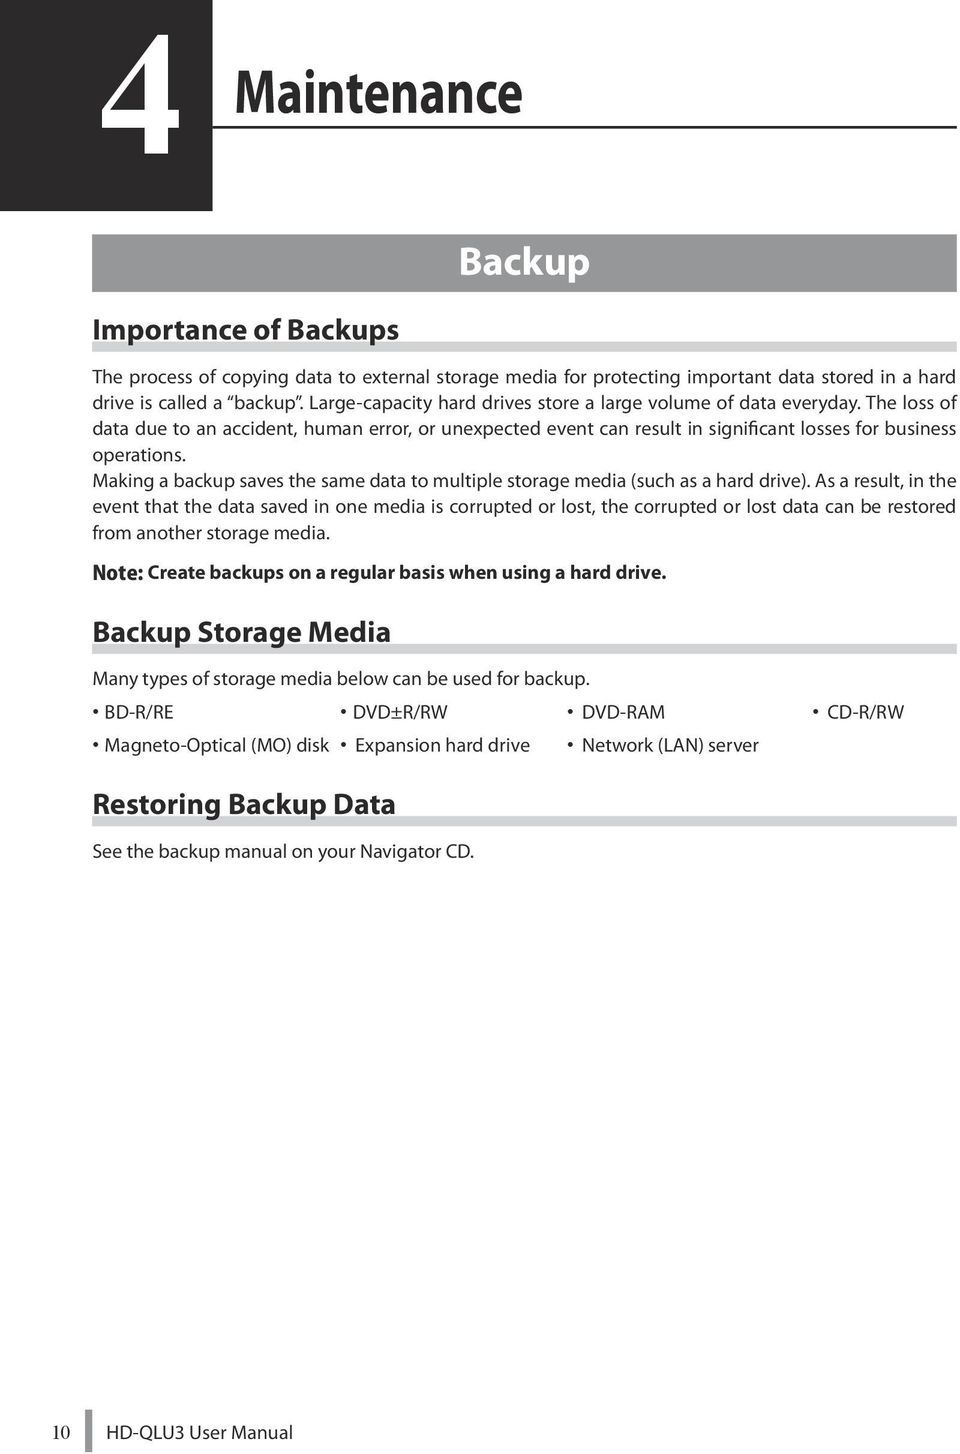 Making a backup saves the same data to multiple storage media (such as a hard drive).